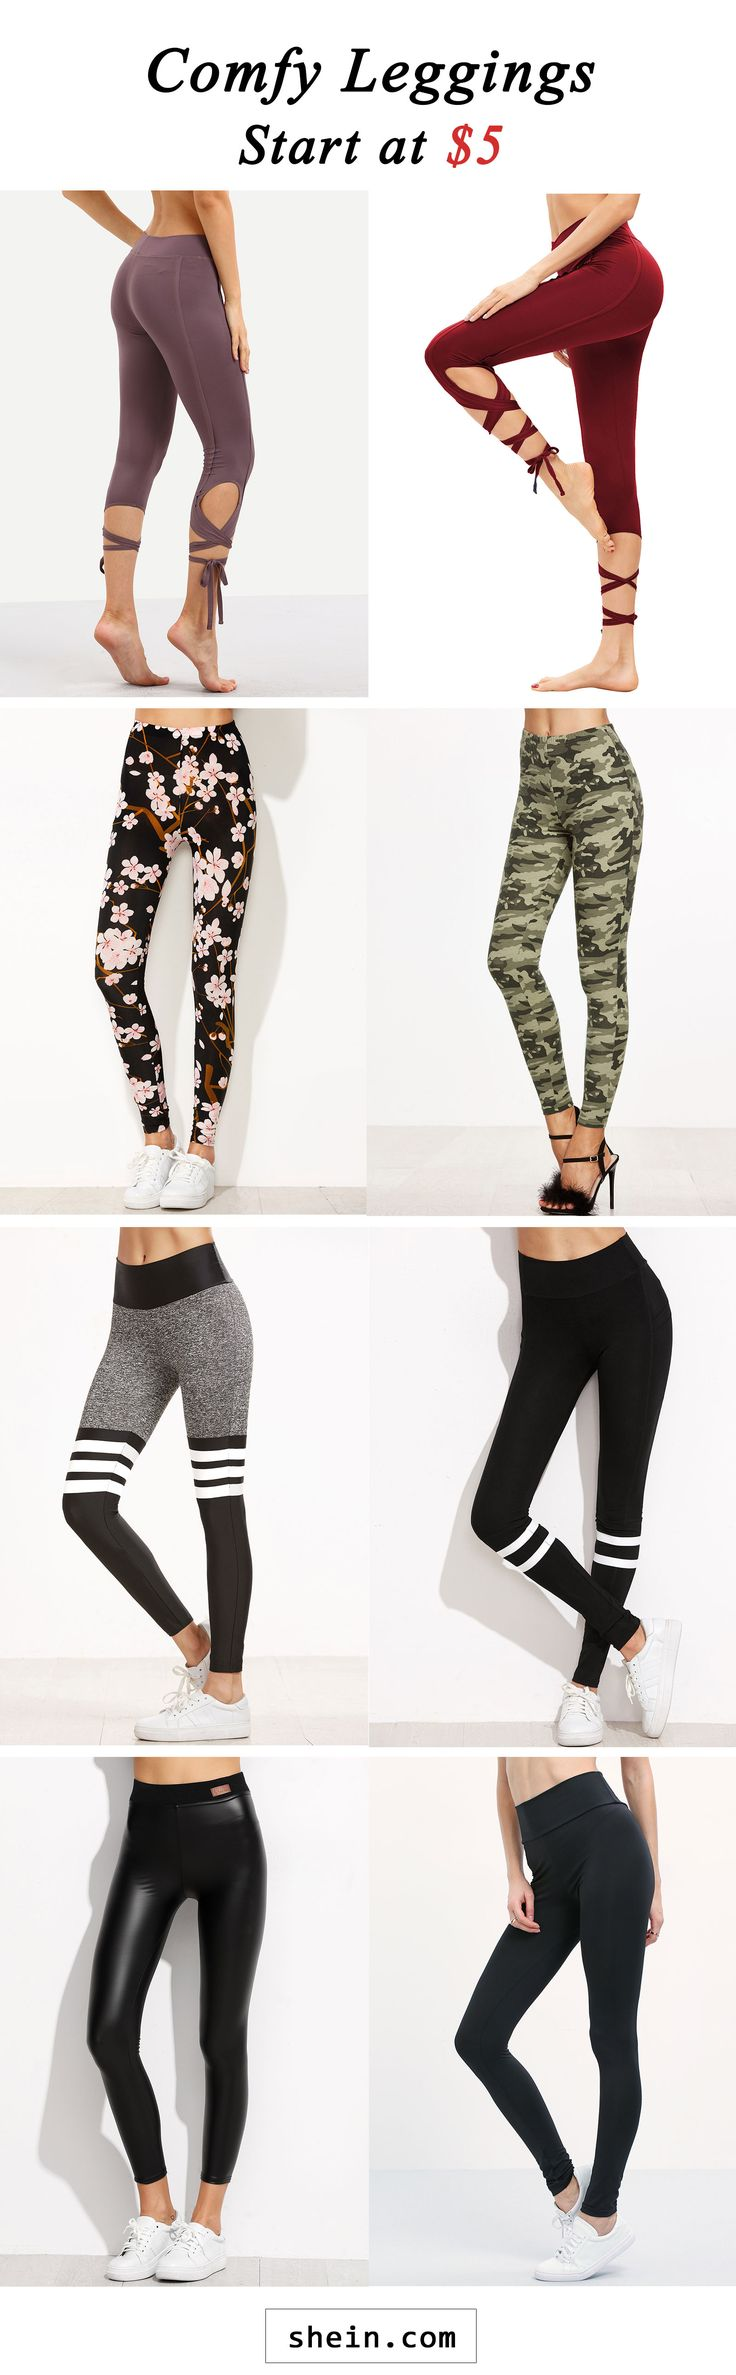 Comfy leggings start at $5